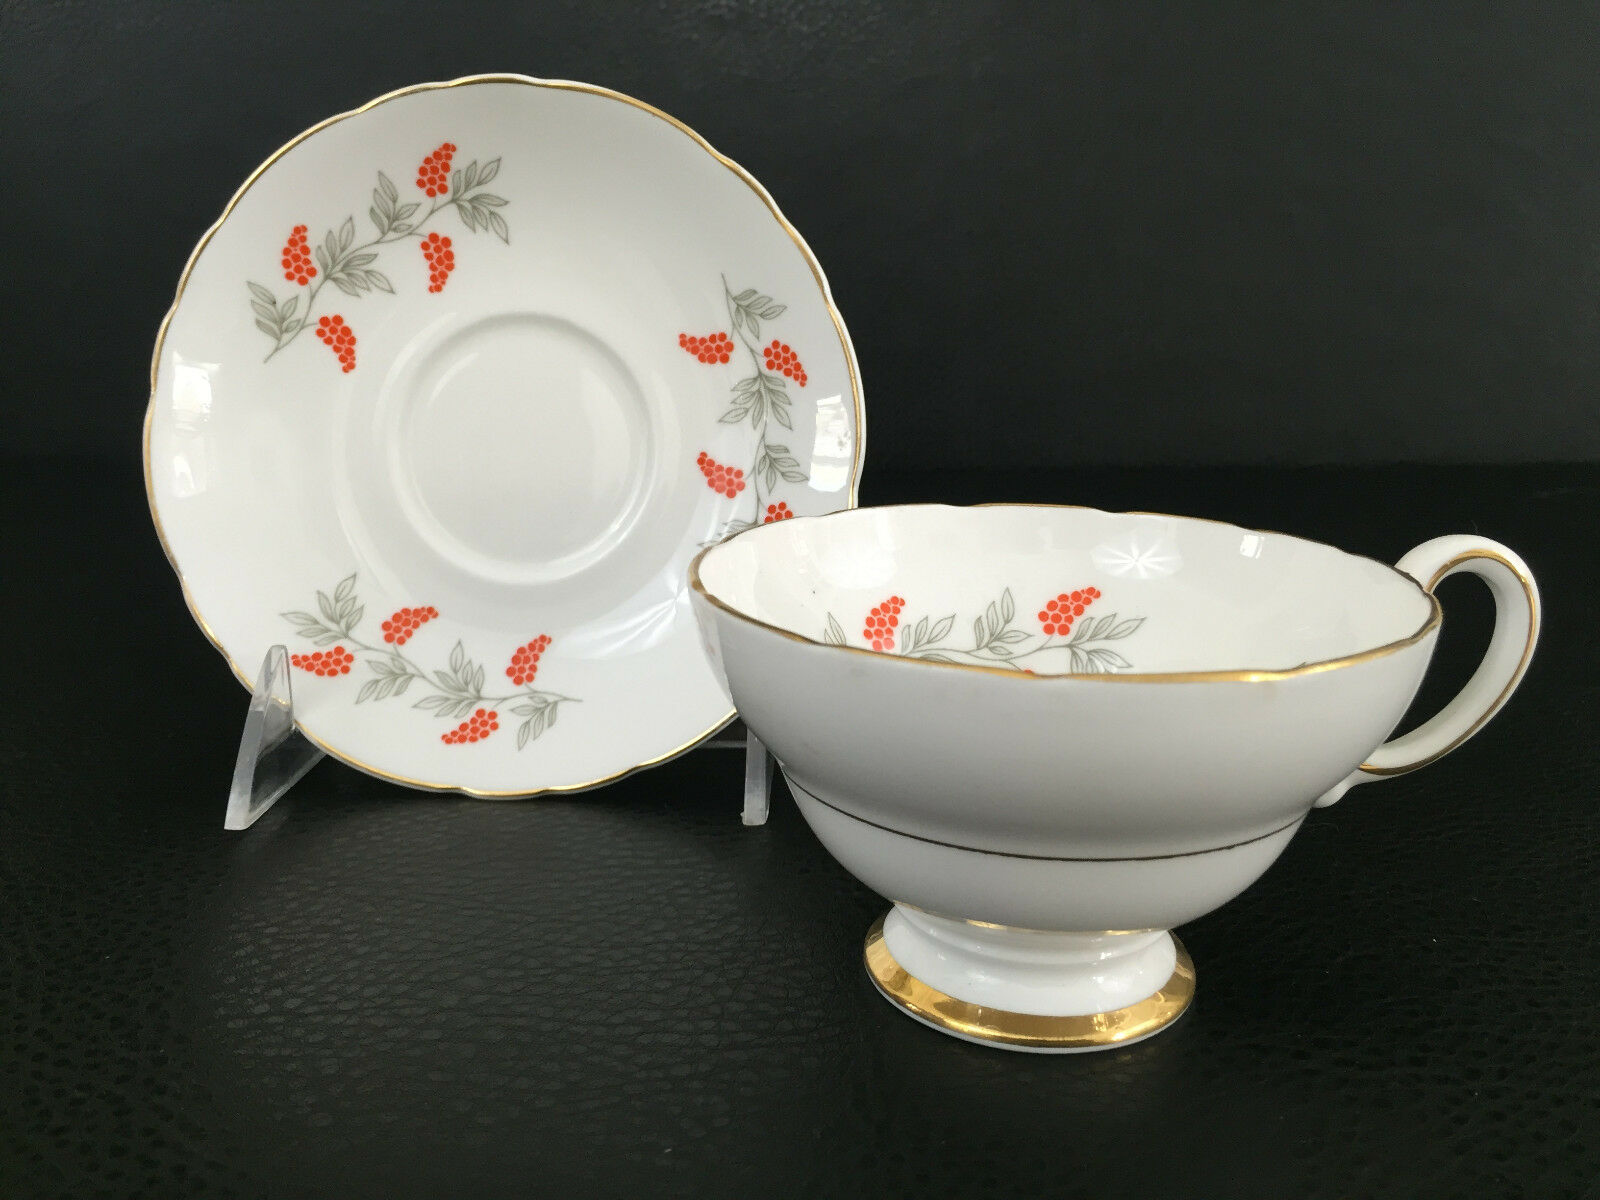 crown staffordshire fine bone china cup saucer england 1930 39 s orange flowers. Black Bedroom Furniture Sets. Home Design Ideas